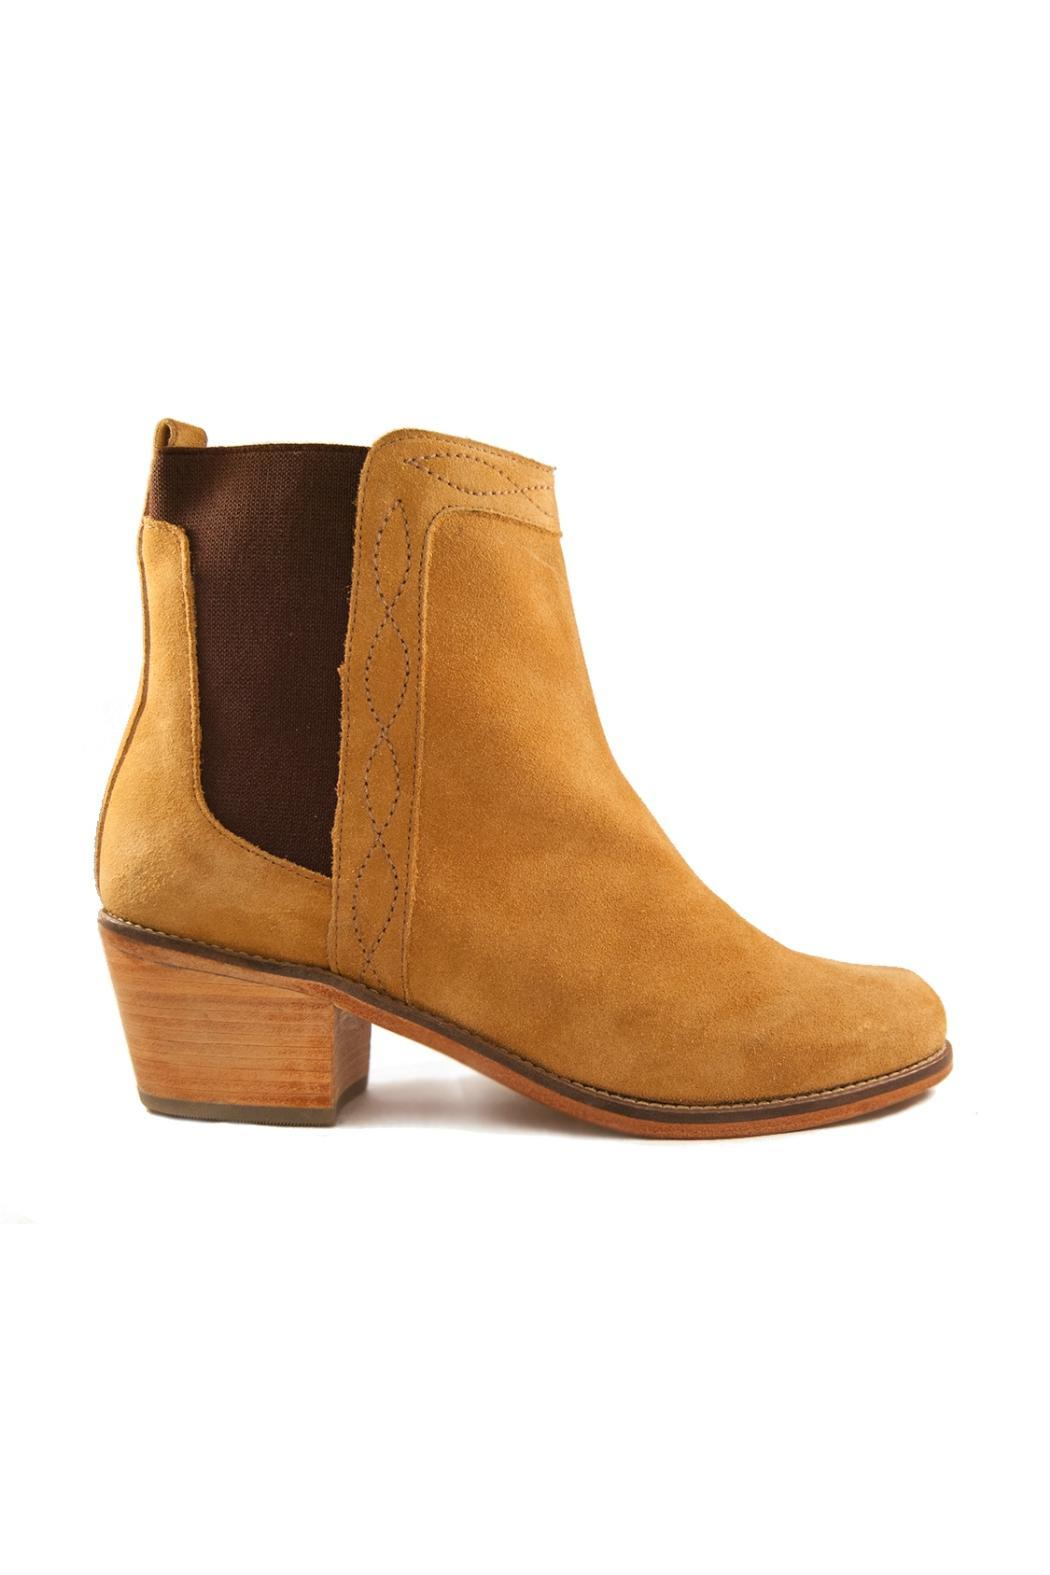 Fortress of Inca Handmade Suede Bootie - Front Full Image